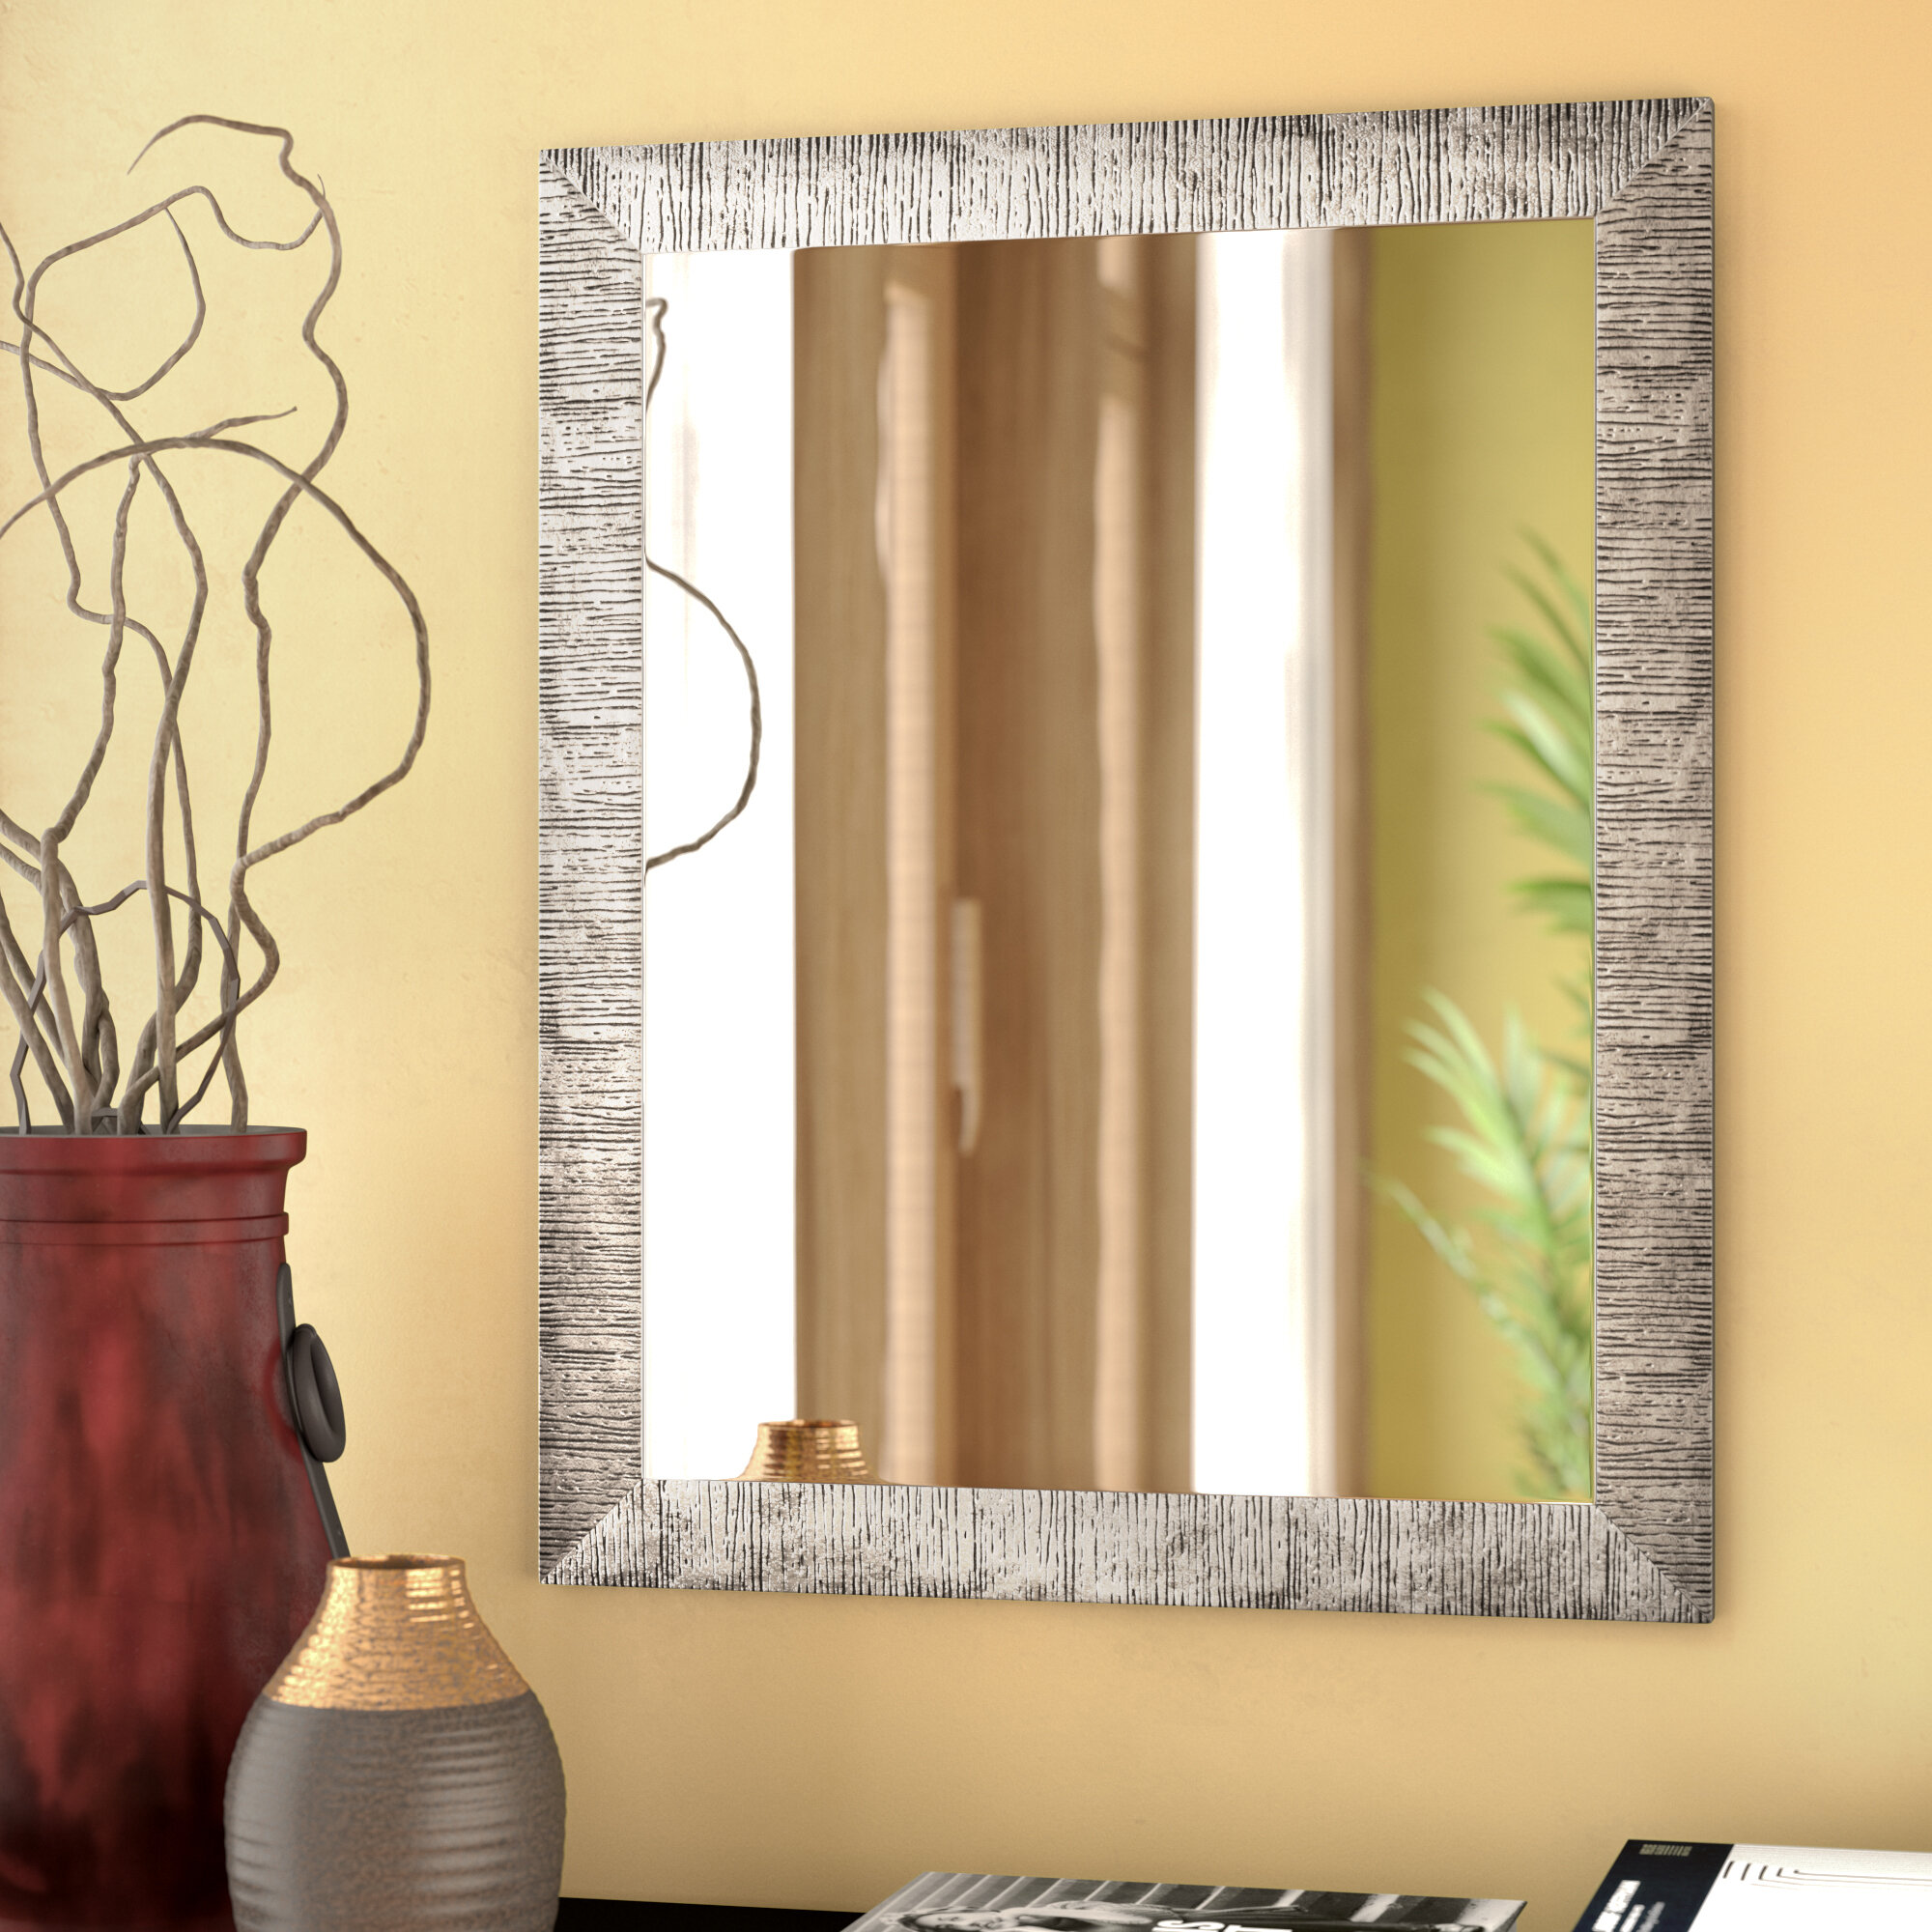 Skeete Wall Mirror & Reviews | Birch Lane